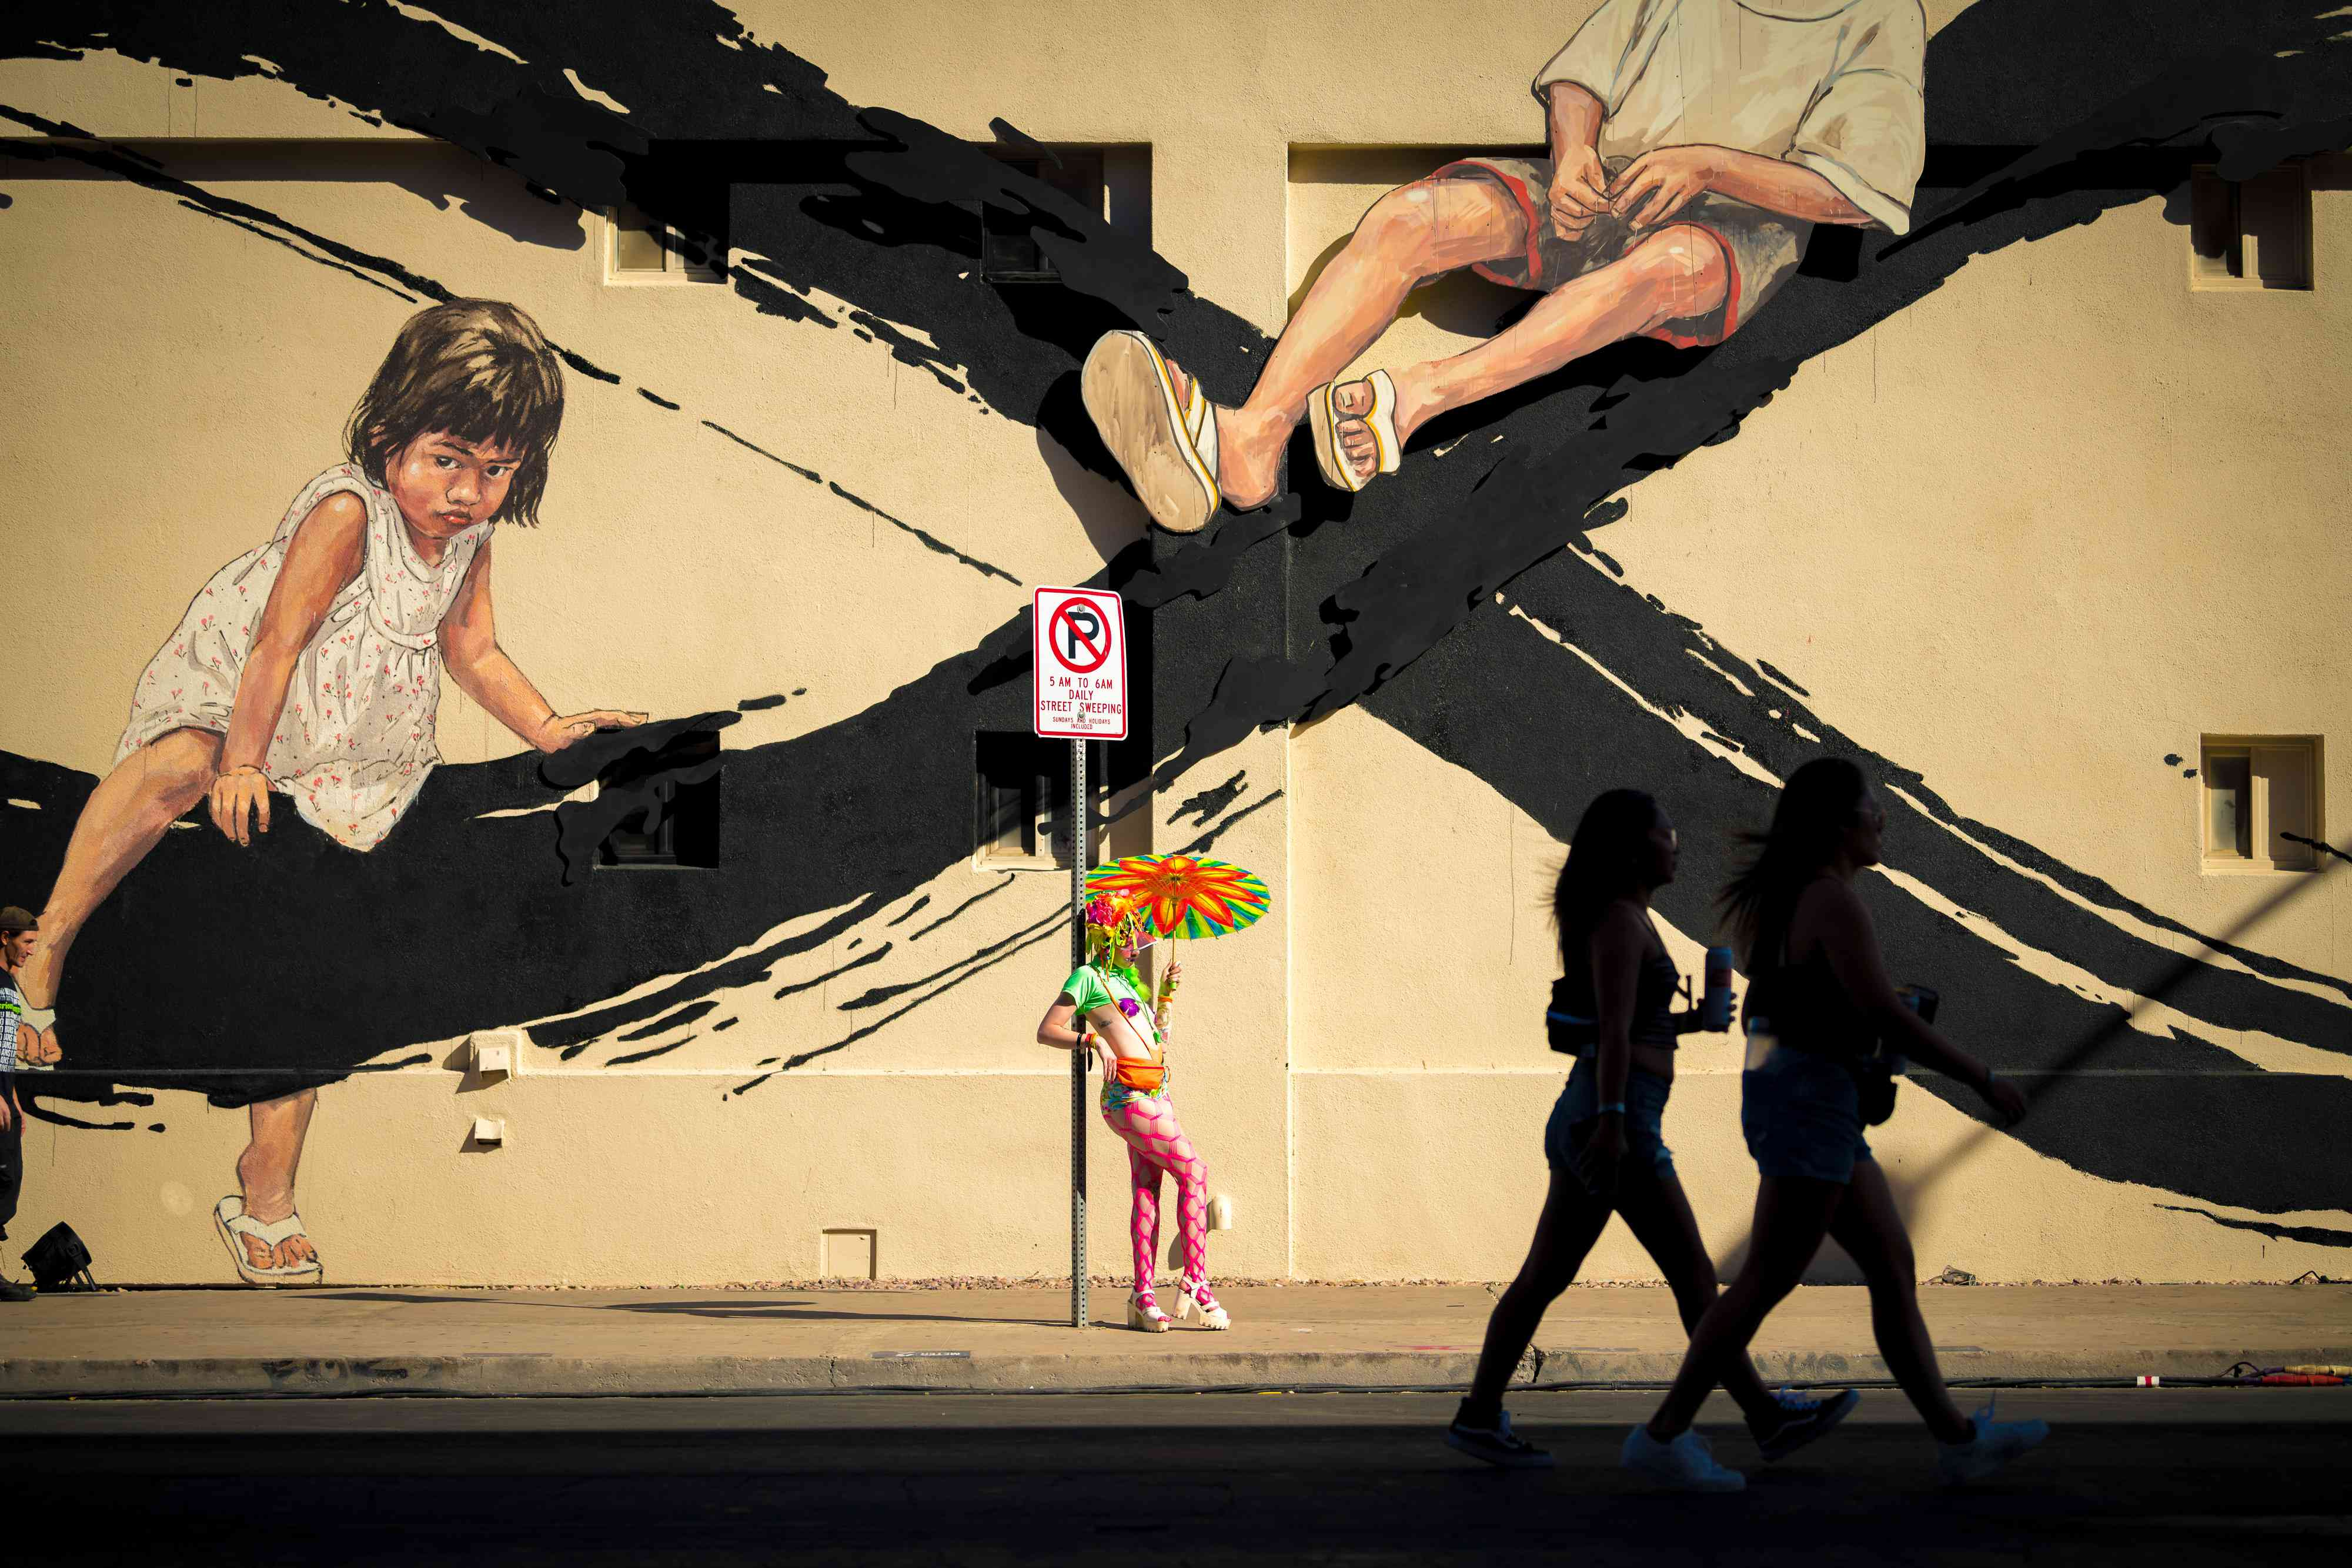 Two women in silhouette walking past a parson in a colorful outfit standing in front of a wall mural